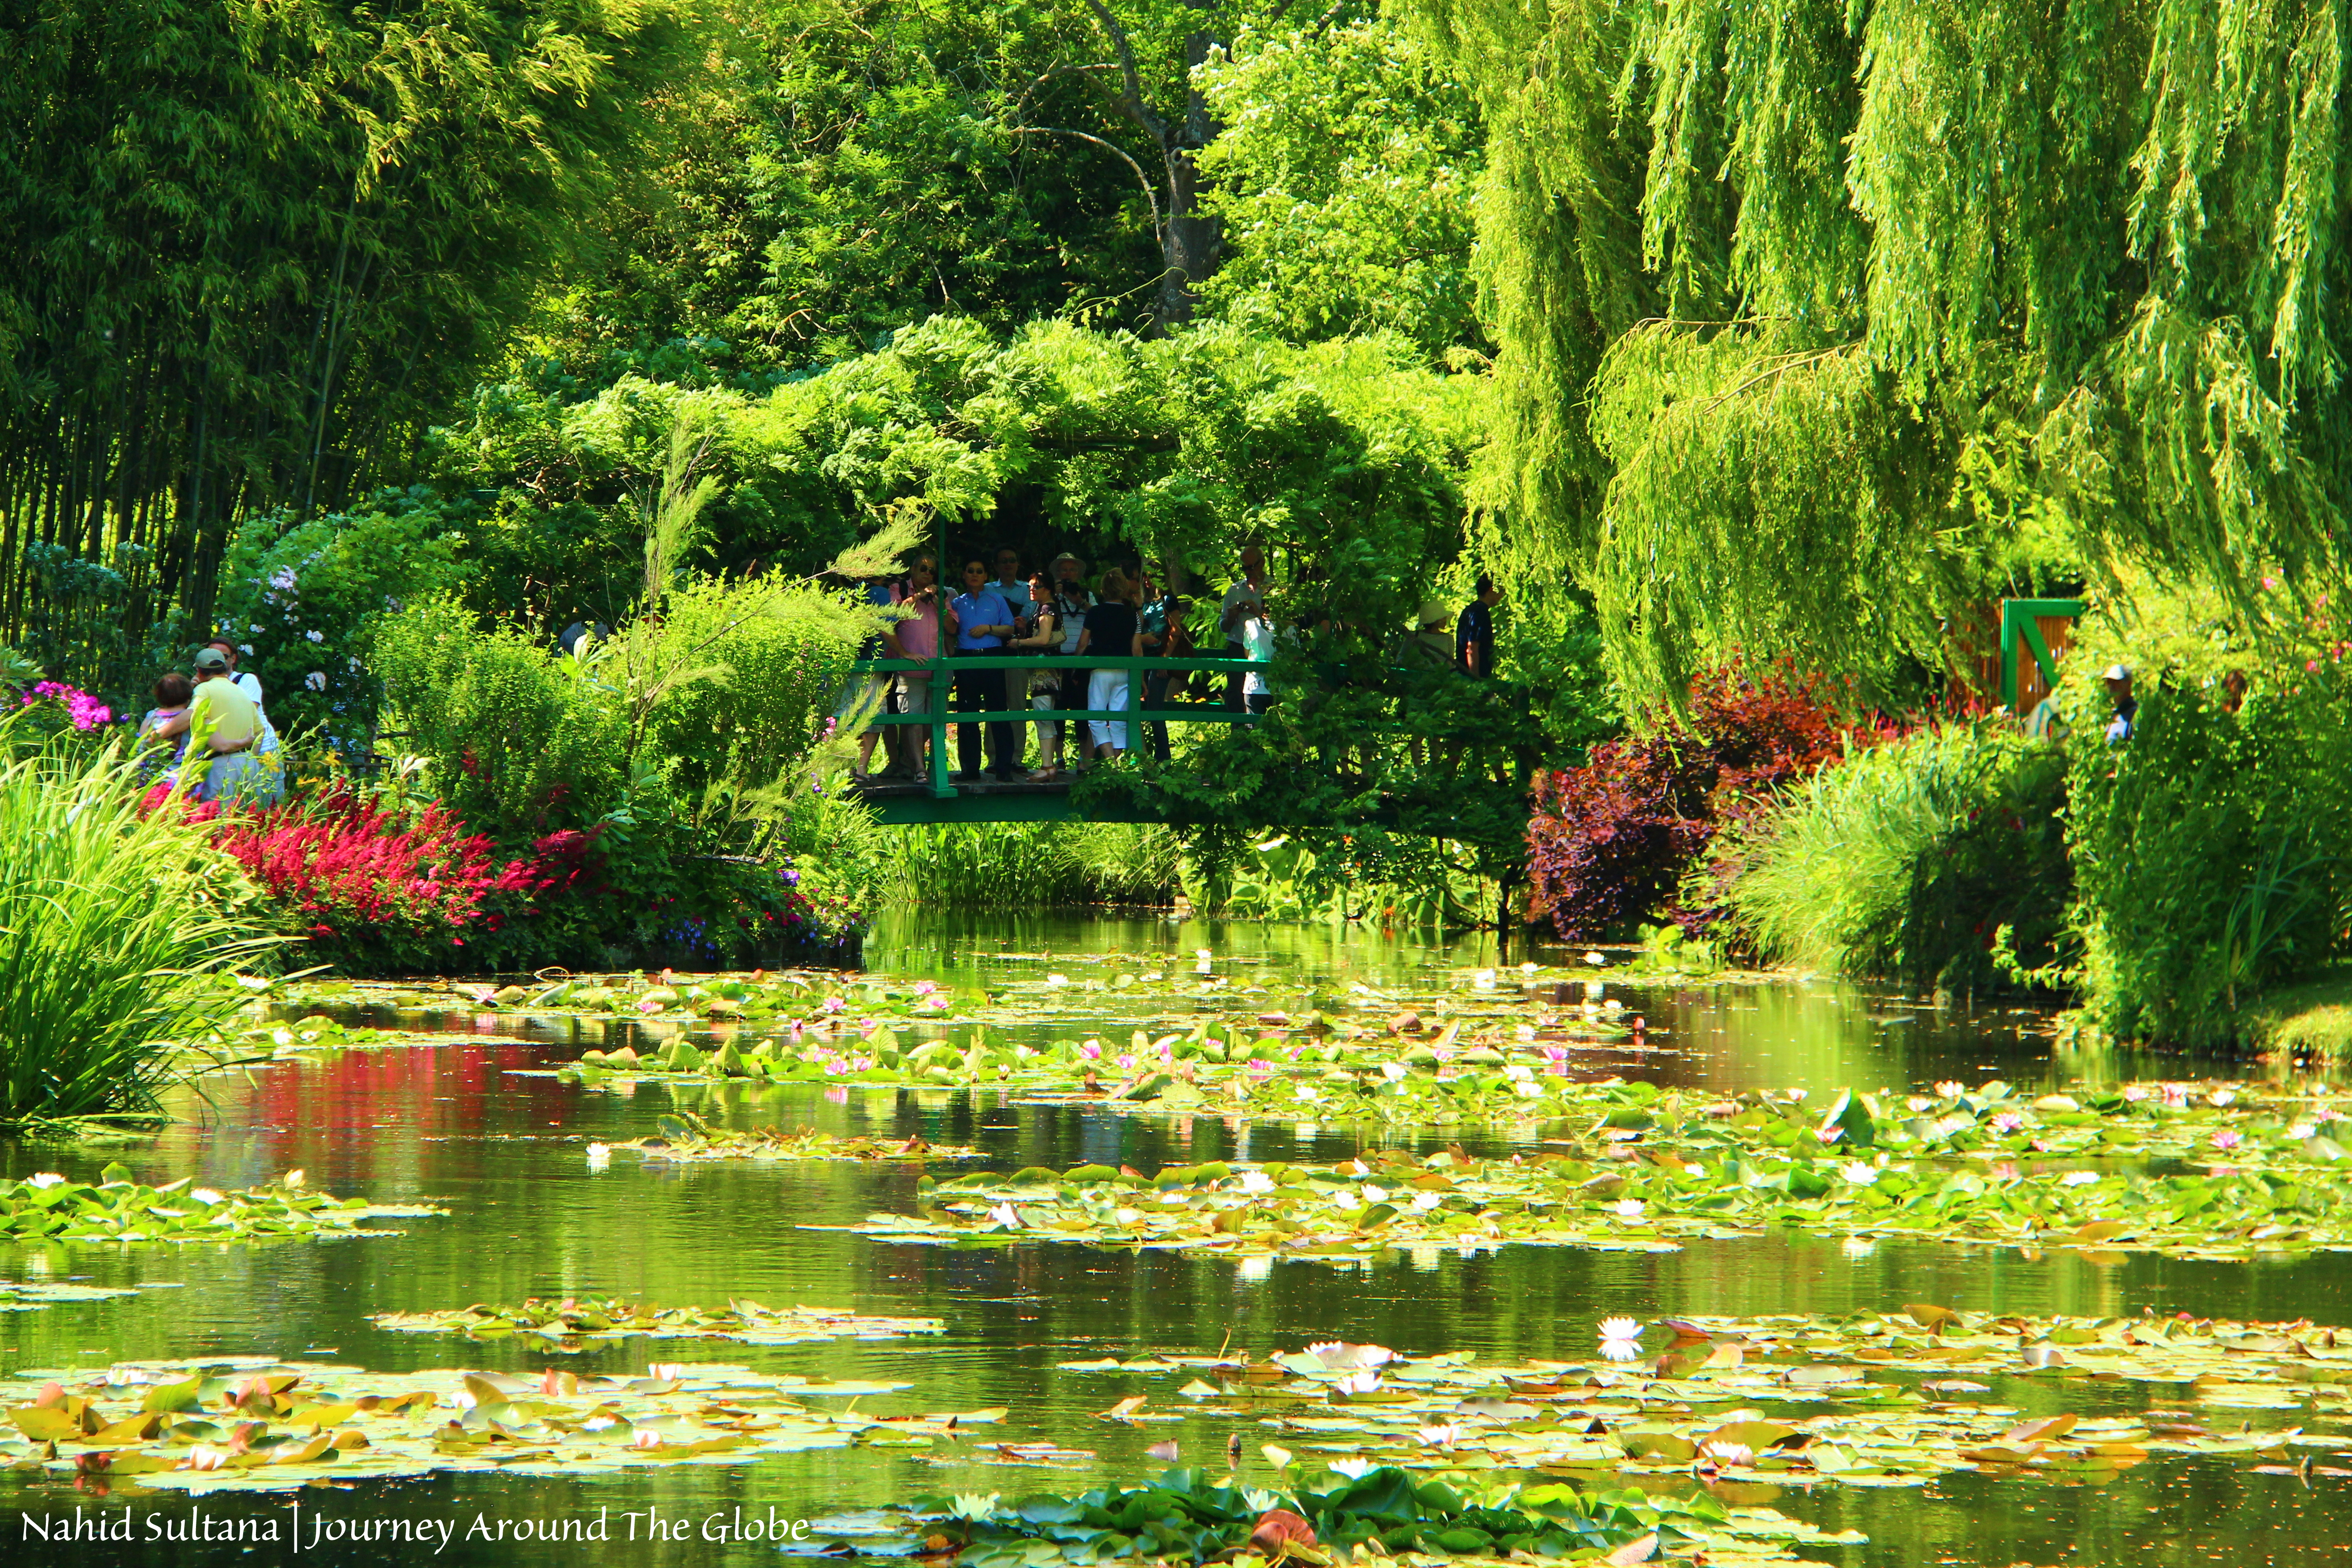 Impressionist claude monet 39 s iconic garden in giverny france for Monet home